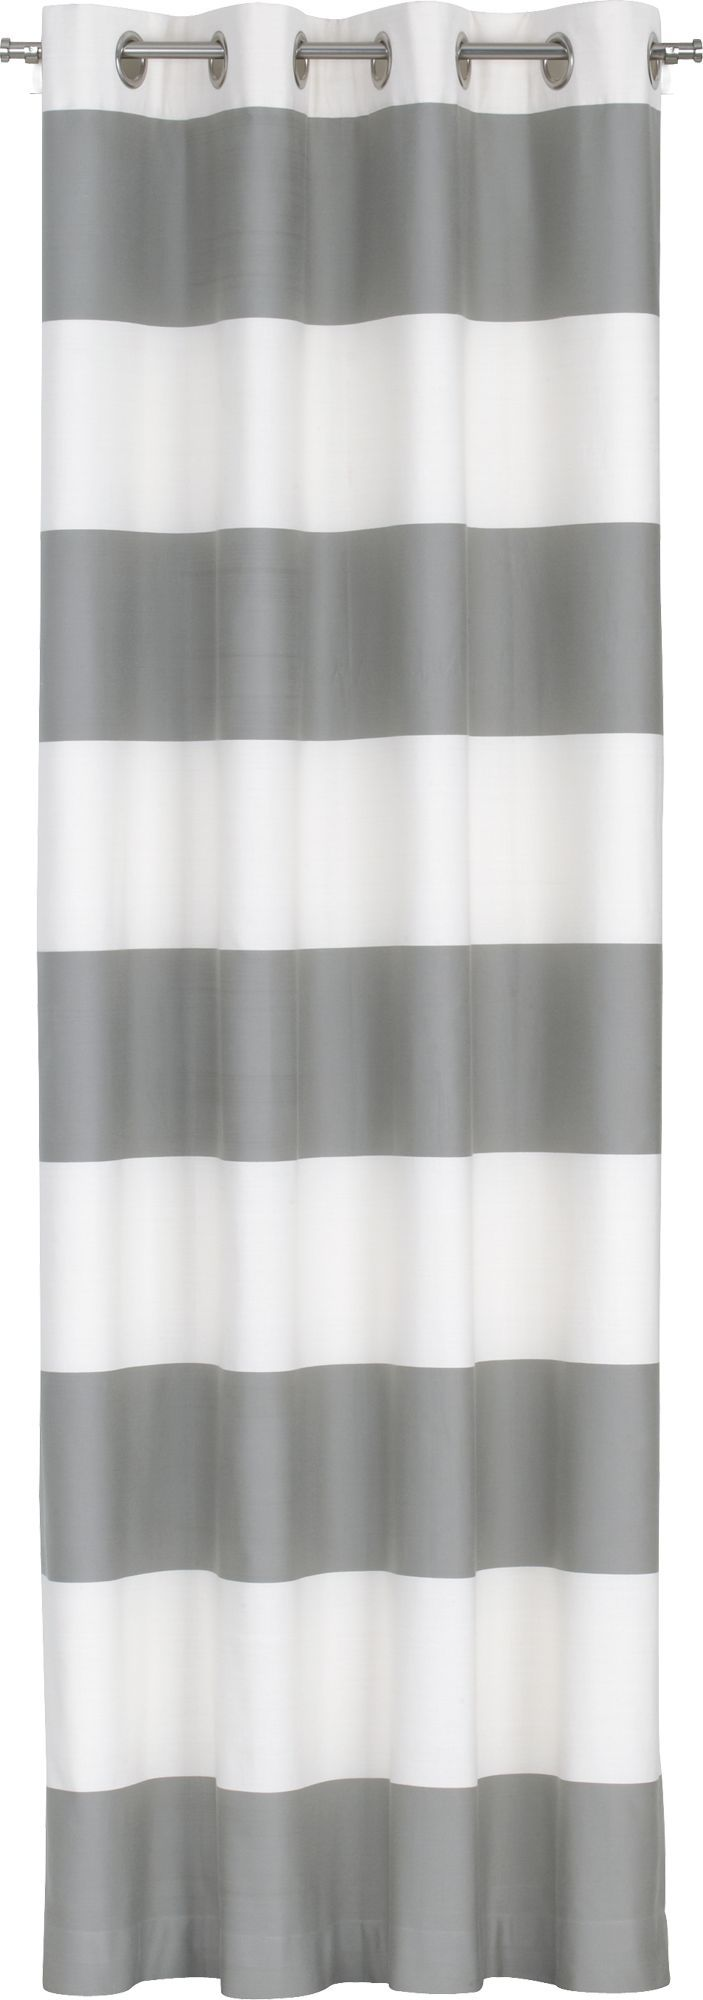 Alston Ivory/Grey Curtain Panel in Curtains | Crate and Barrel